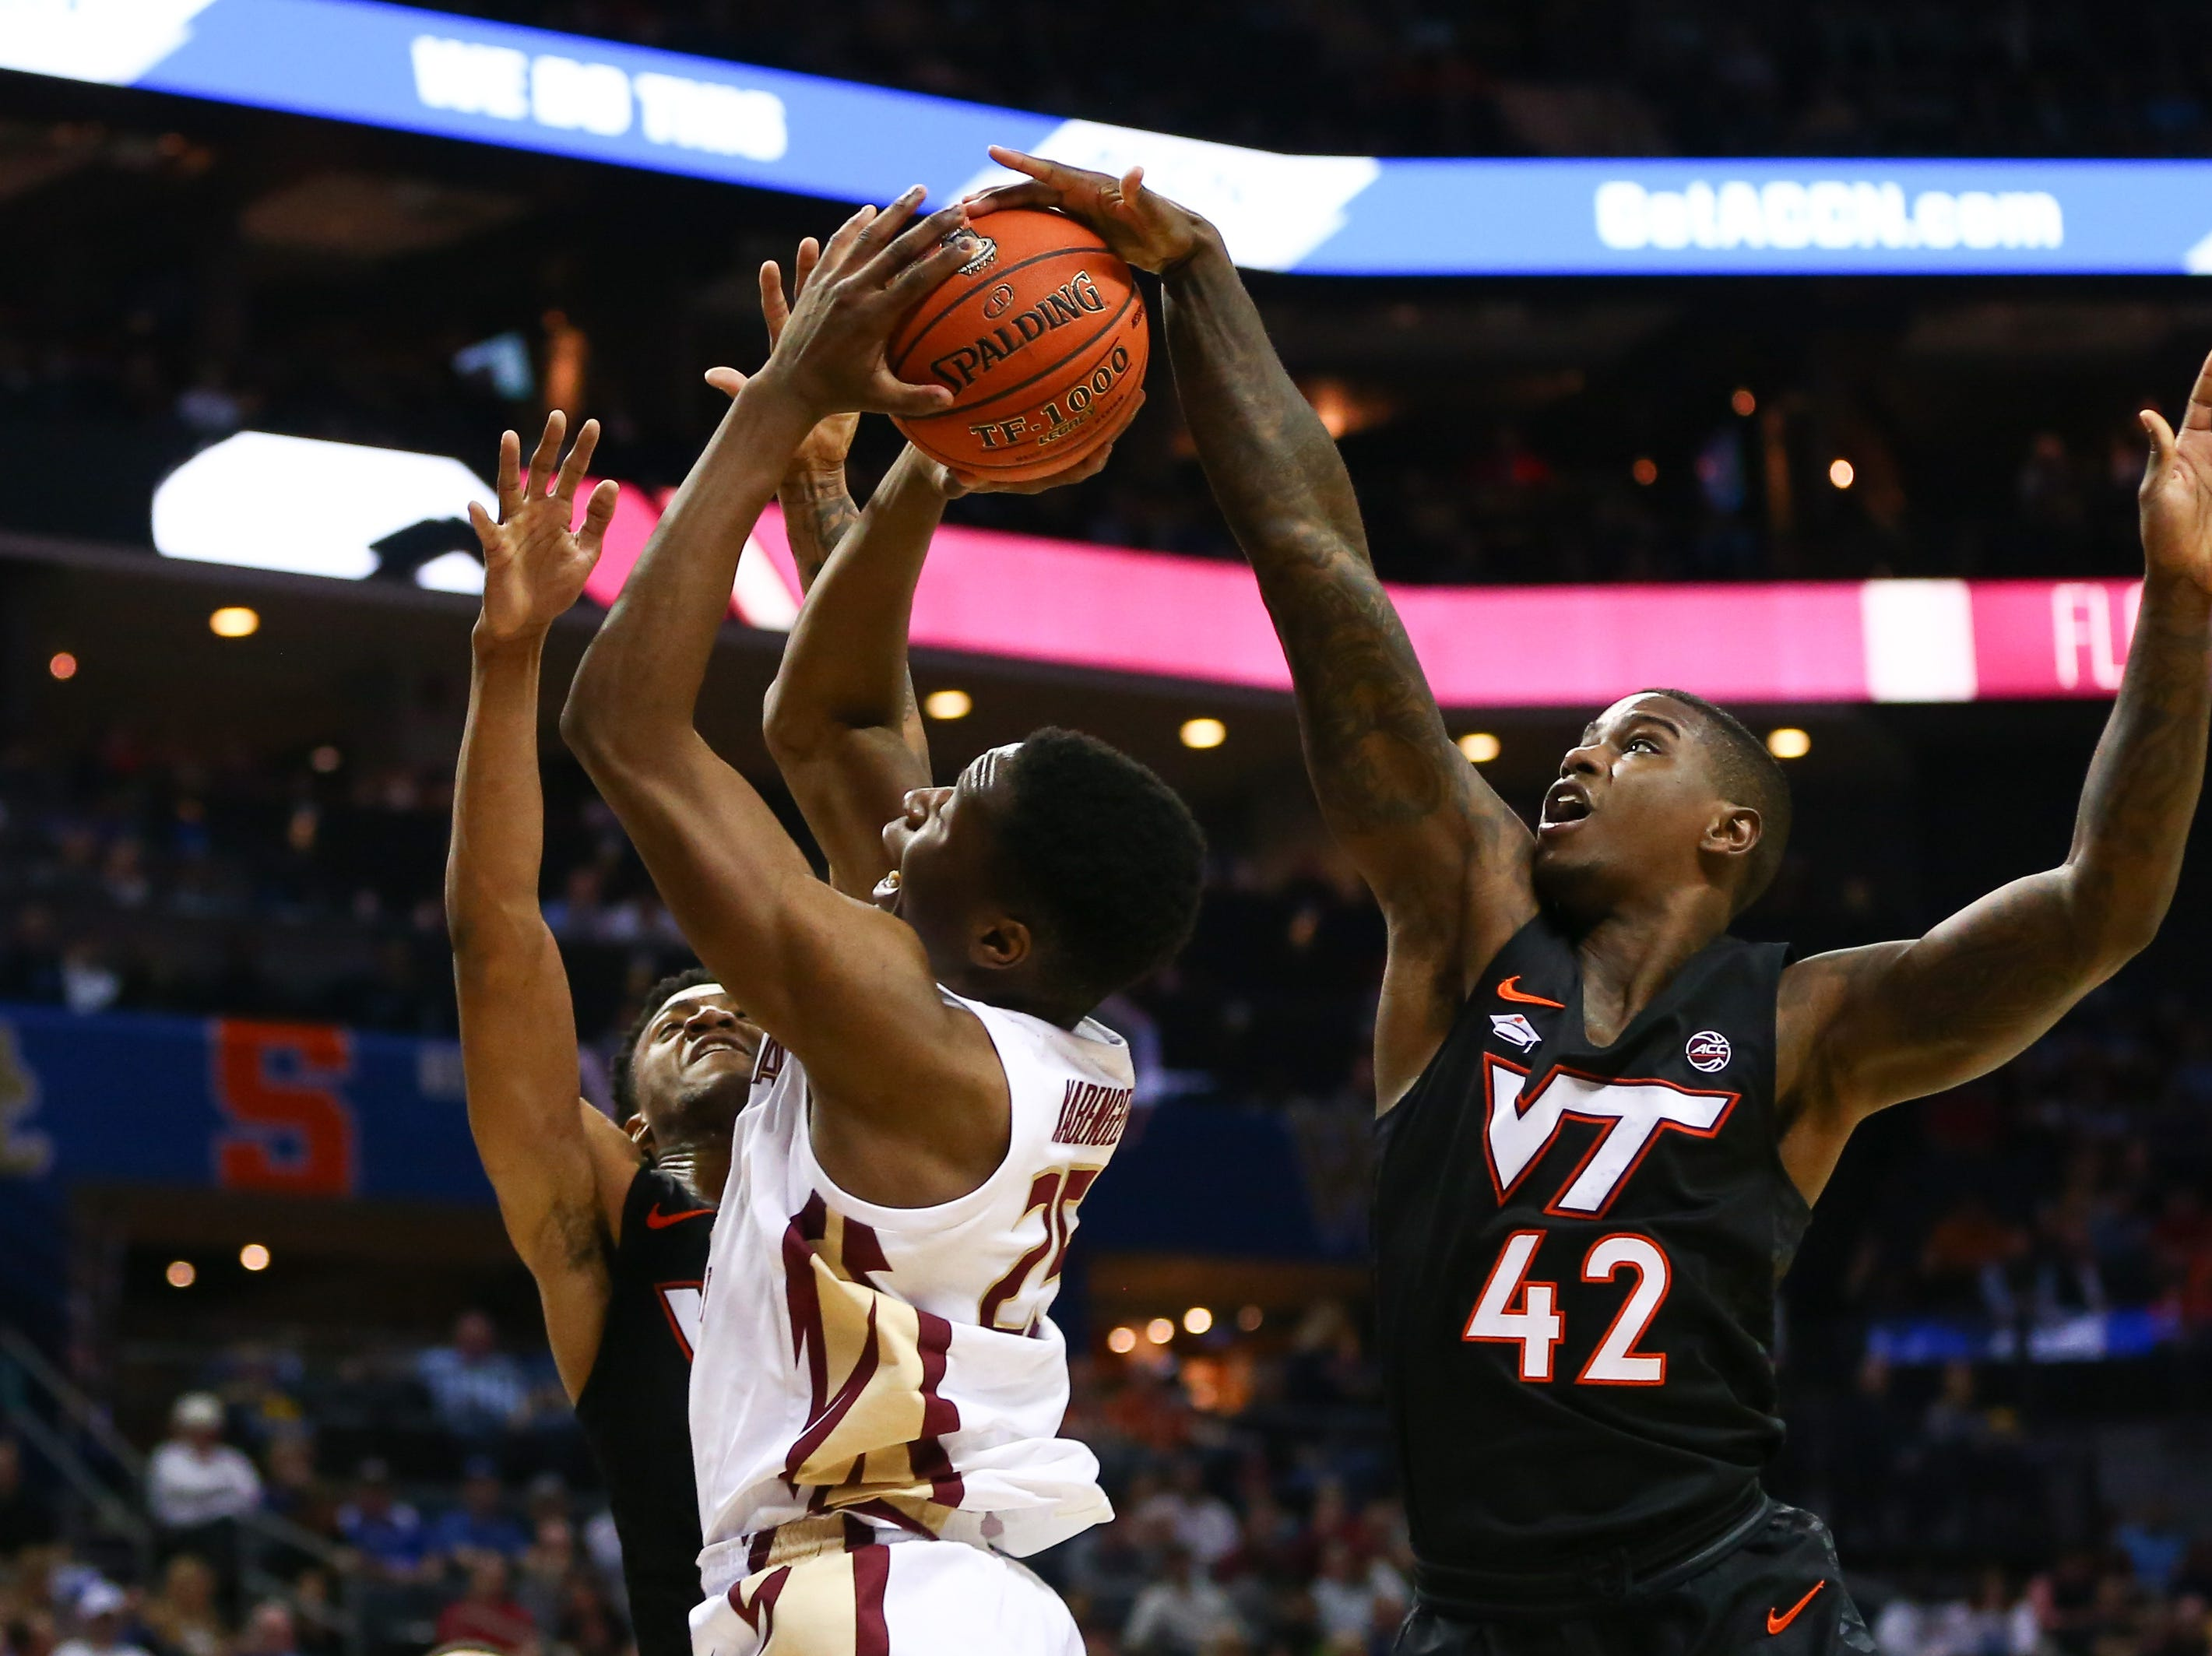 Mar 14, 2019; Charlotte, NC, USA; Virginia Tech Hokies guard Ty Outlaw (42) blocks the shot of Florida State Seminoles forward Mfiondu Kabengele (25) in the first half in the ACC conference tournament at Spectrum Center. Mandatory Credit: Jeremy Brevard-USA TODAY Sports